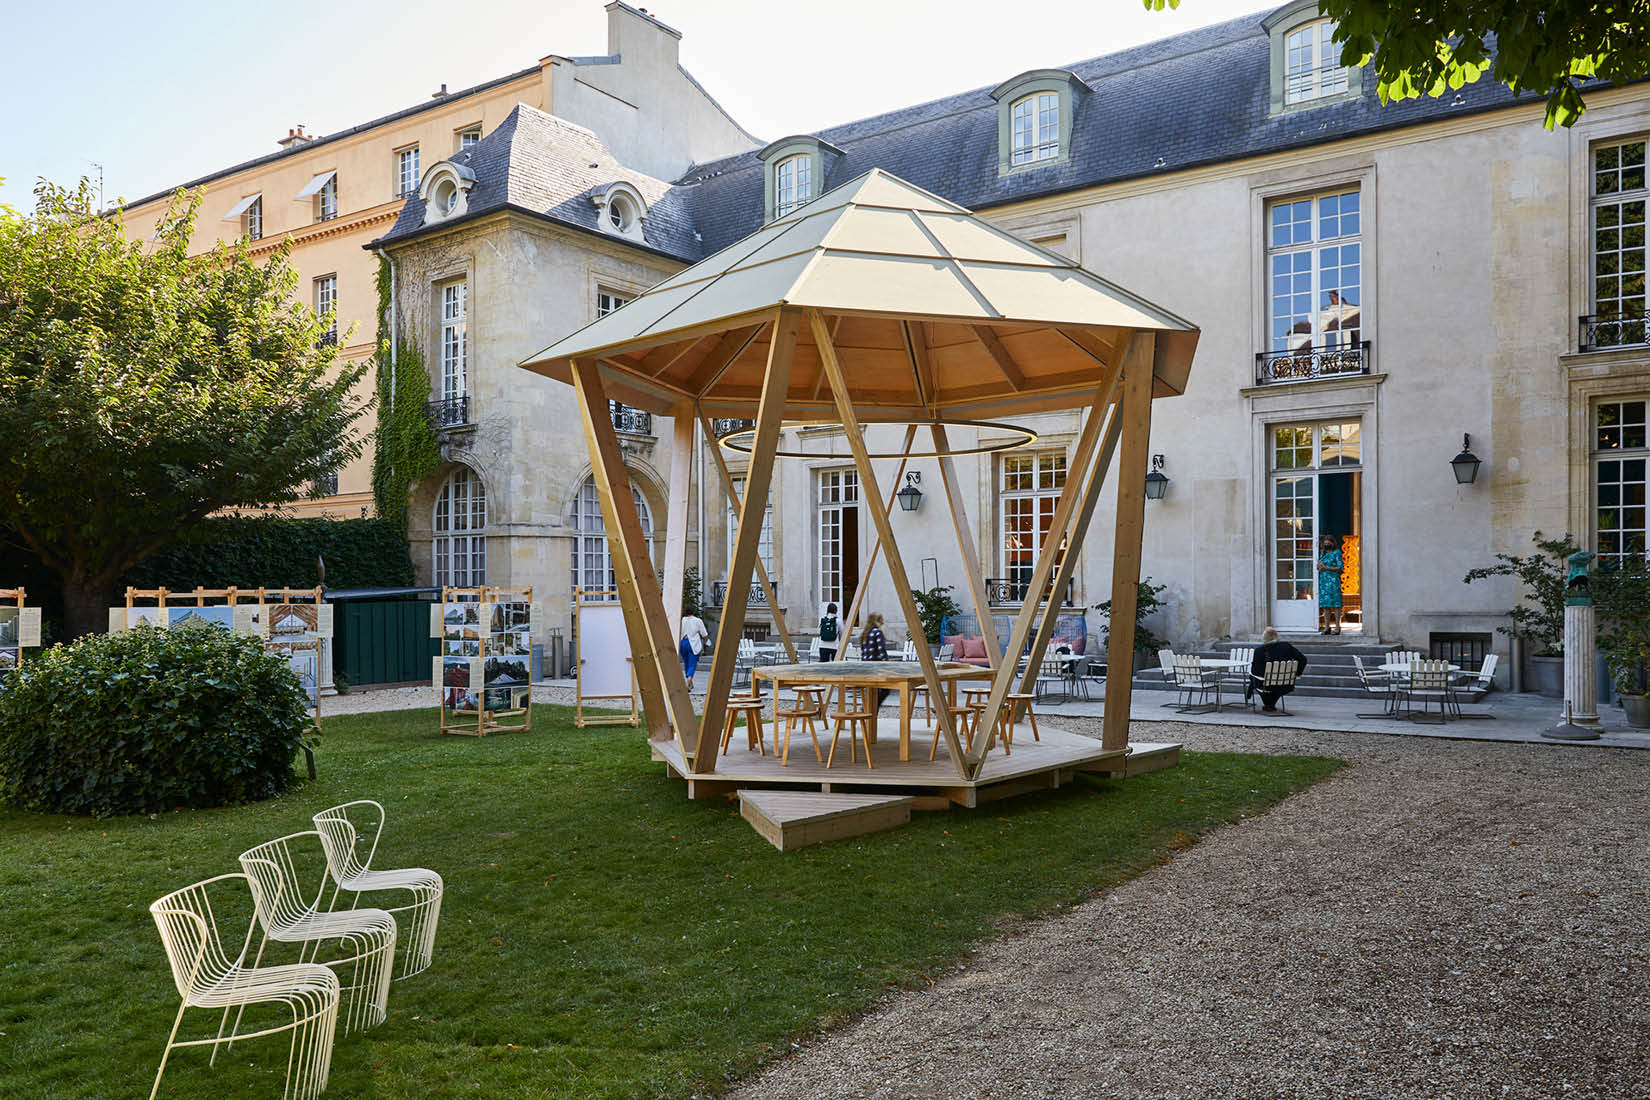 The Hexagonal Pavilion standing in the garden of the Institut suédois, with Hôtel de Marle in the background